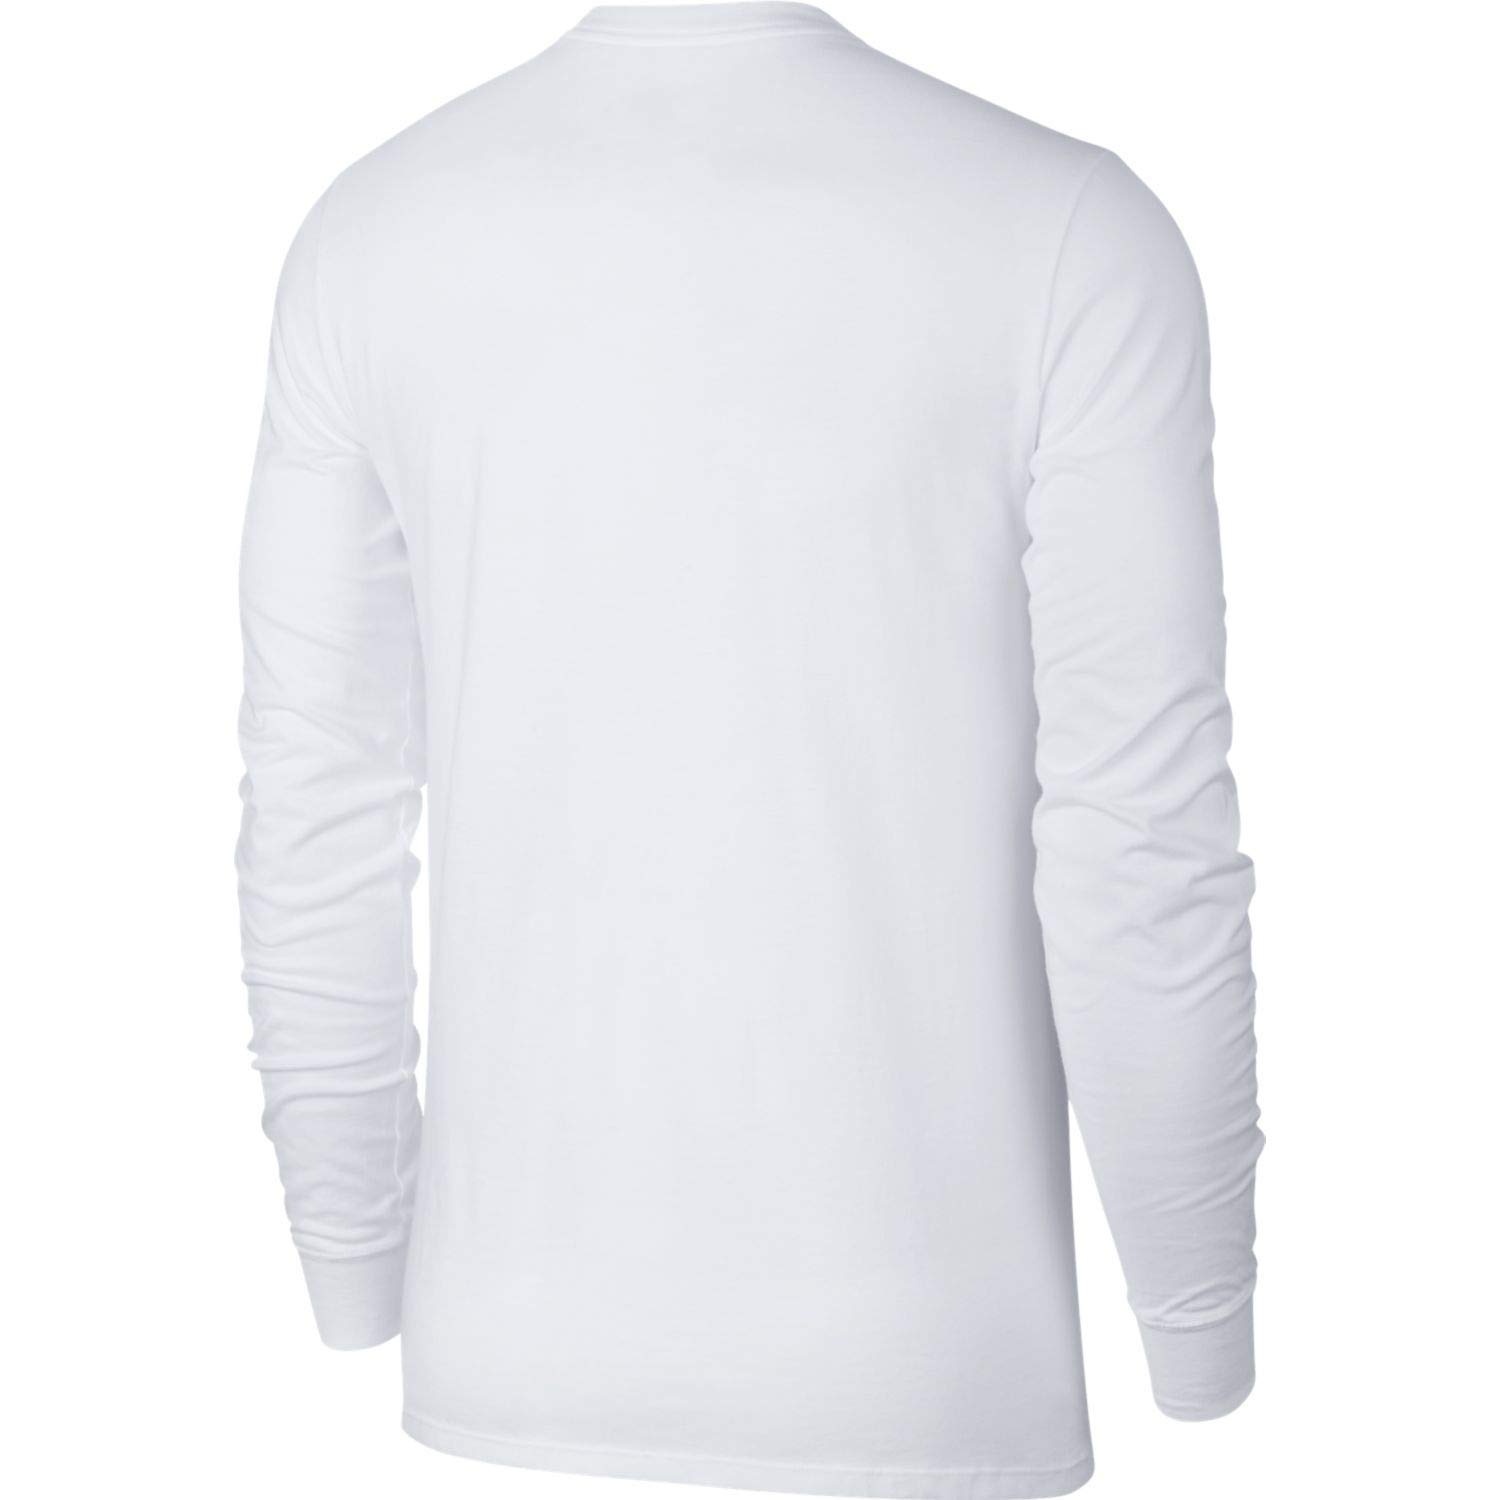 9d9d0dd5 Nike Mens Futura Box Long Sleeve T-Shirt at Amazon Men's Clothing store: